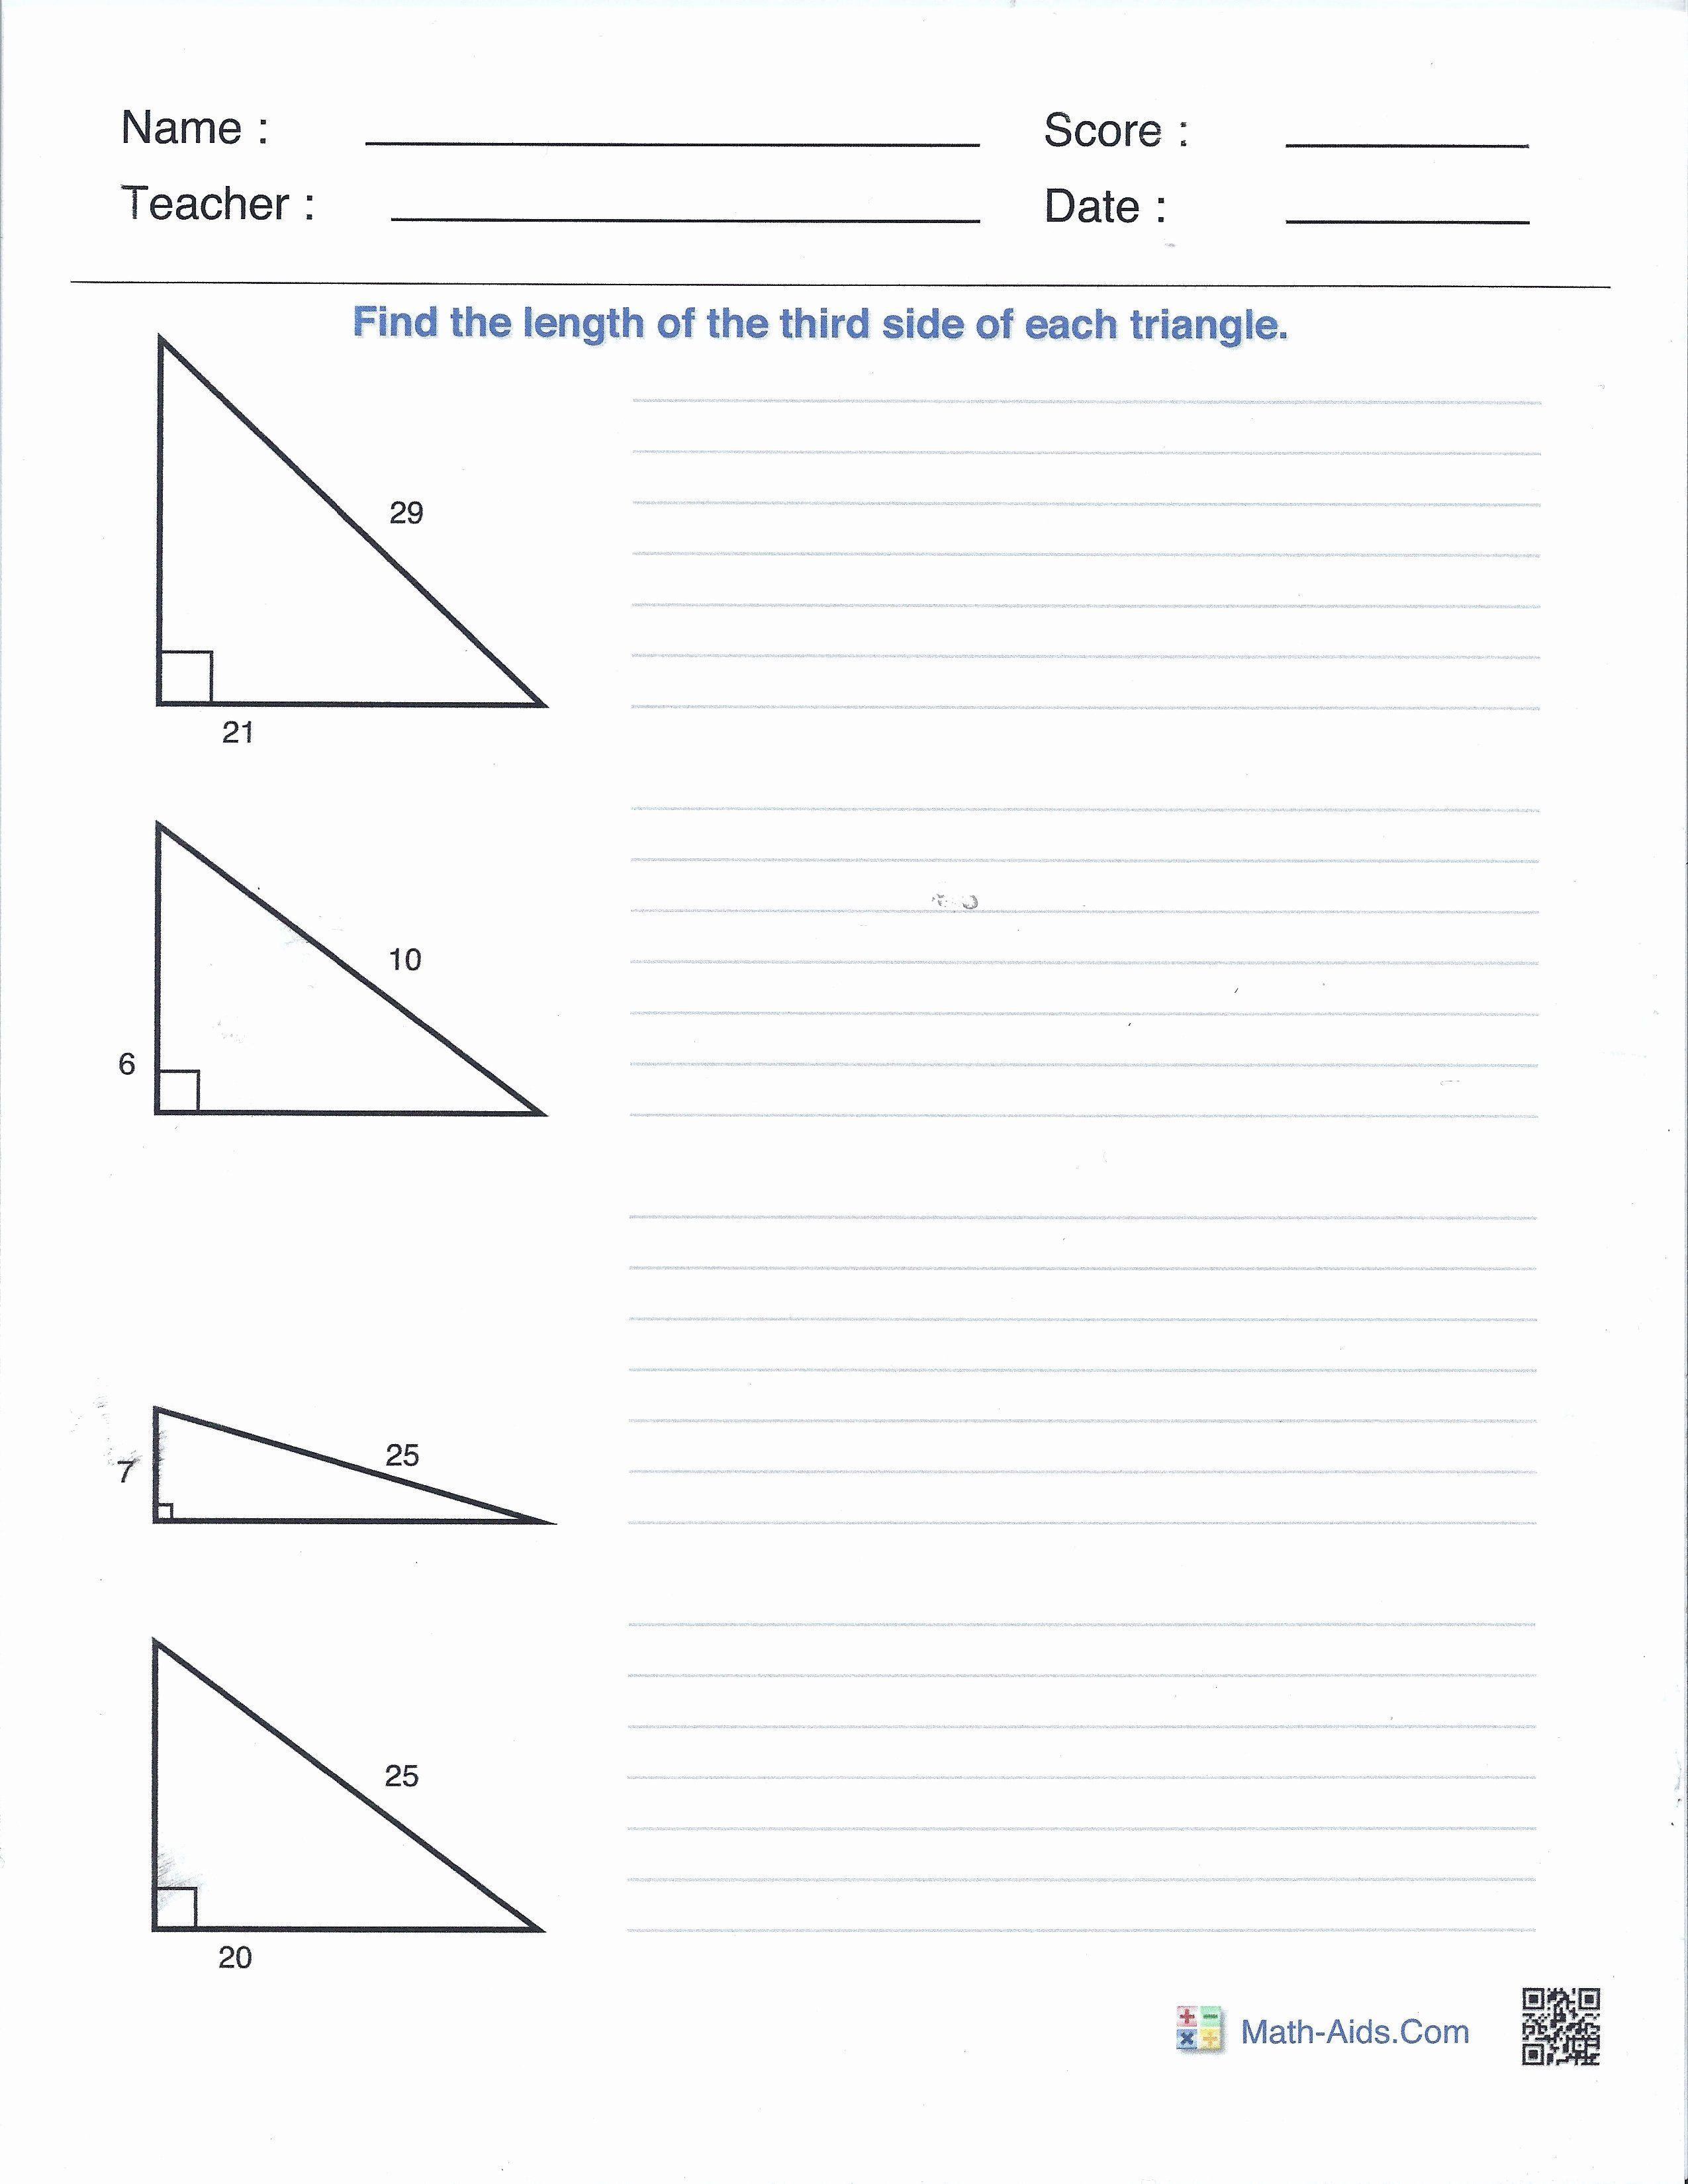 Pythagorean theorem Worksheet with Answers Inspirational Right Angles and  the Pythagore…   Free printable math worksheets [ 3300 x 2550 Pixel ]